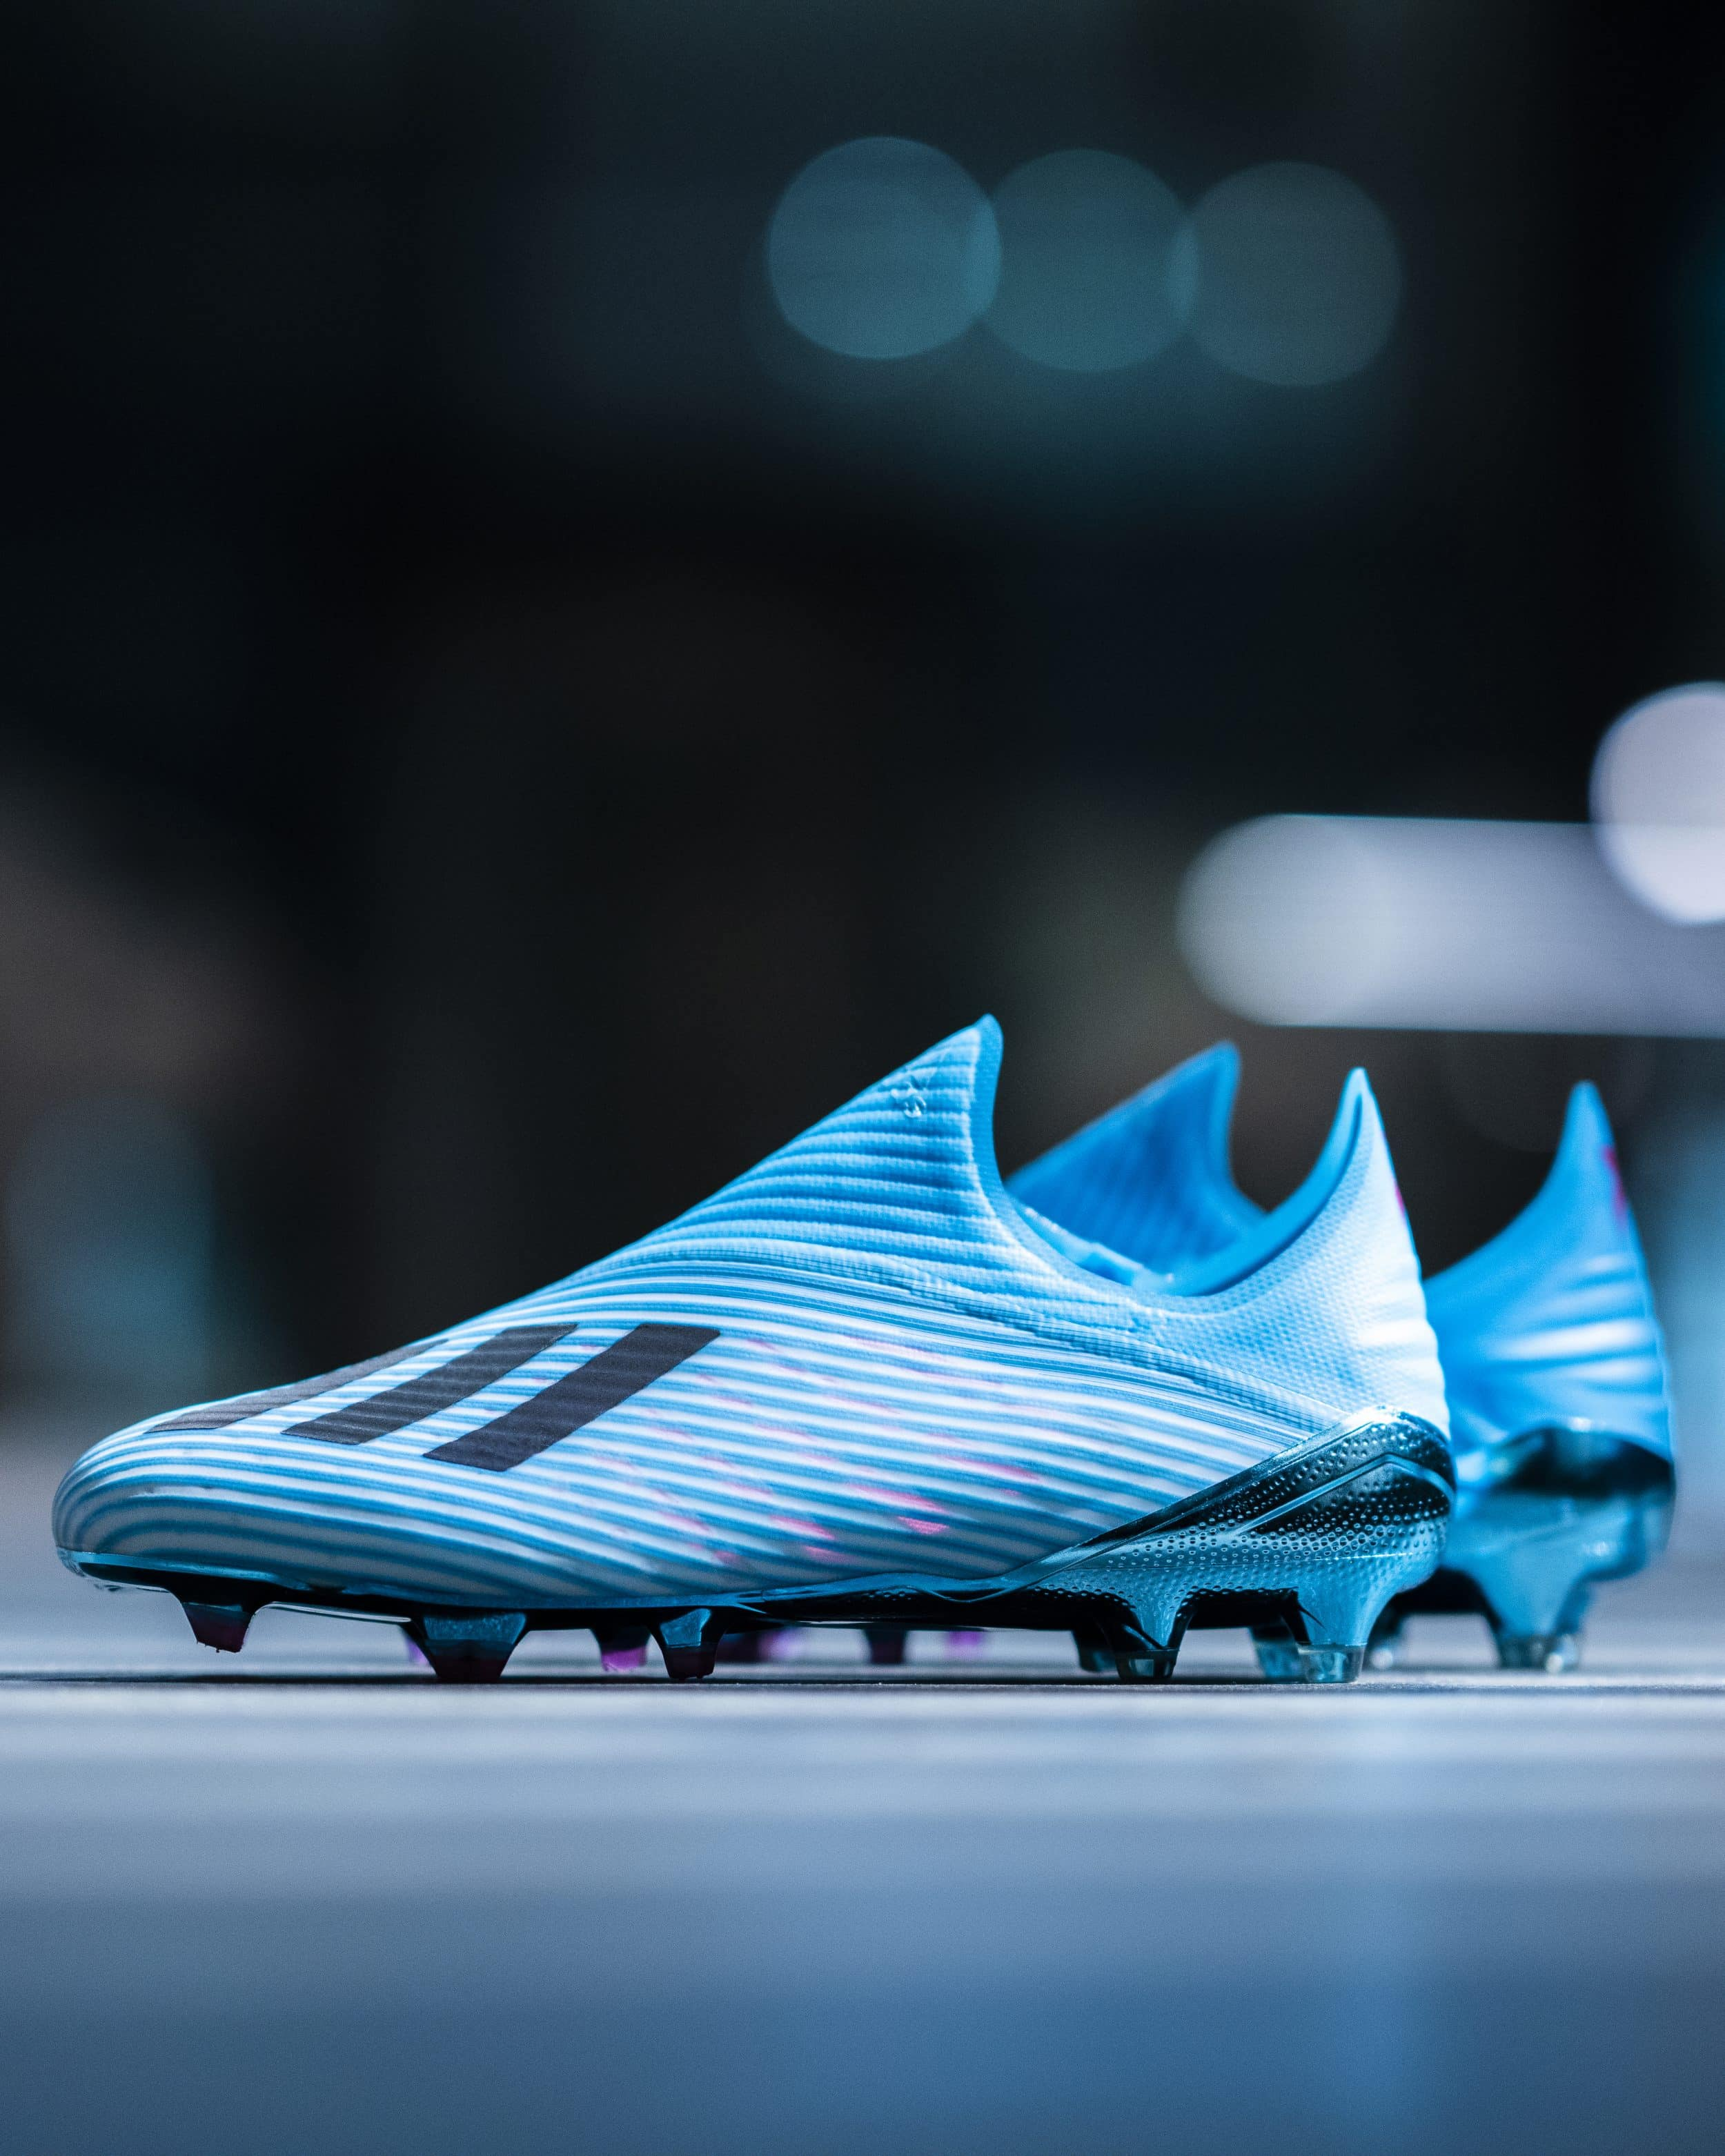 adidas-x-19-pack-hard-wired-juillet-2019-3